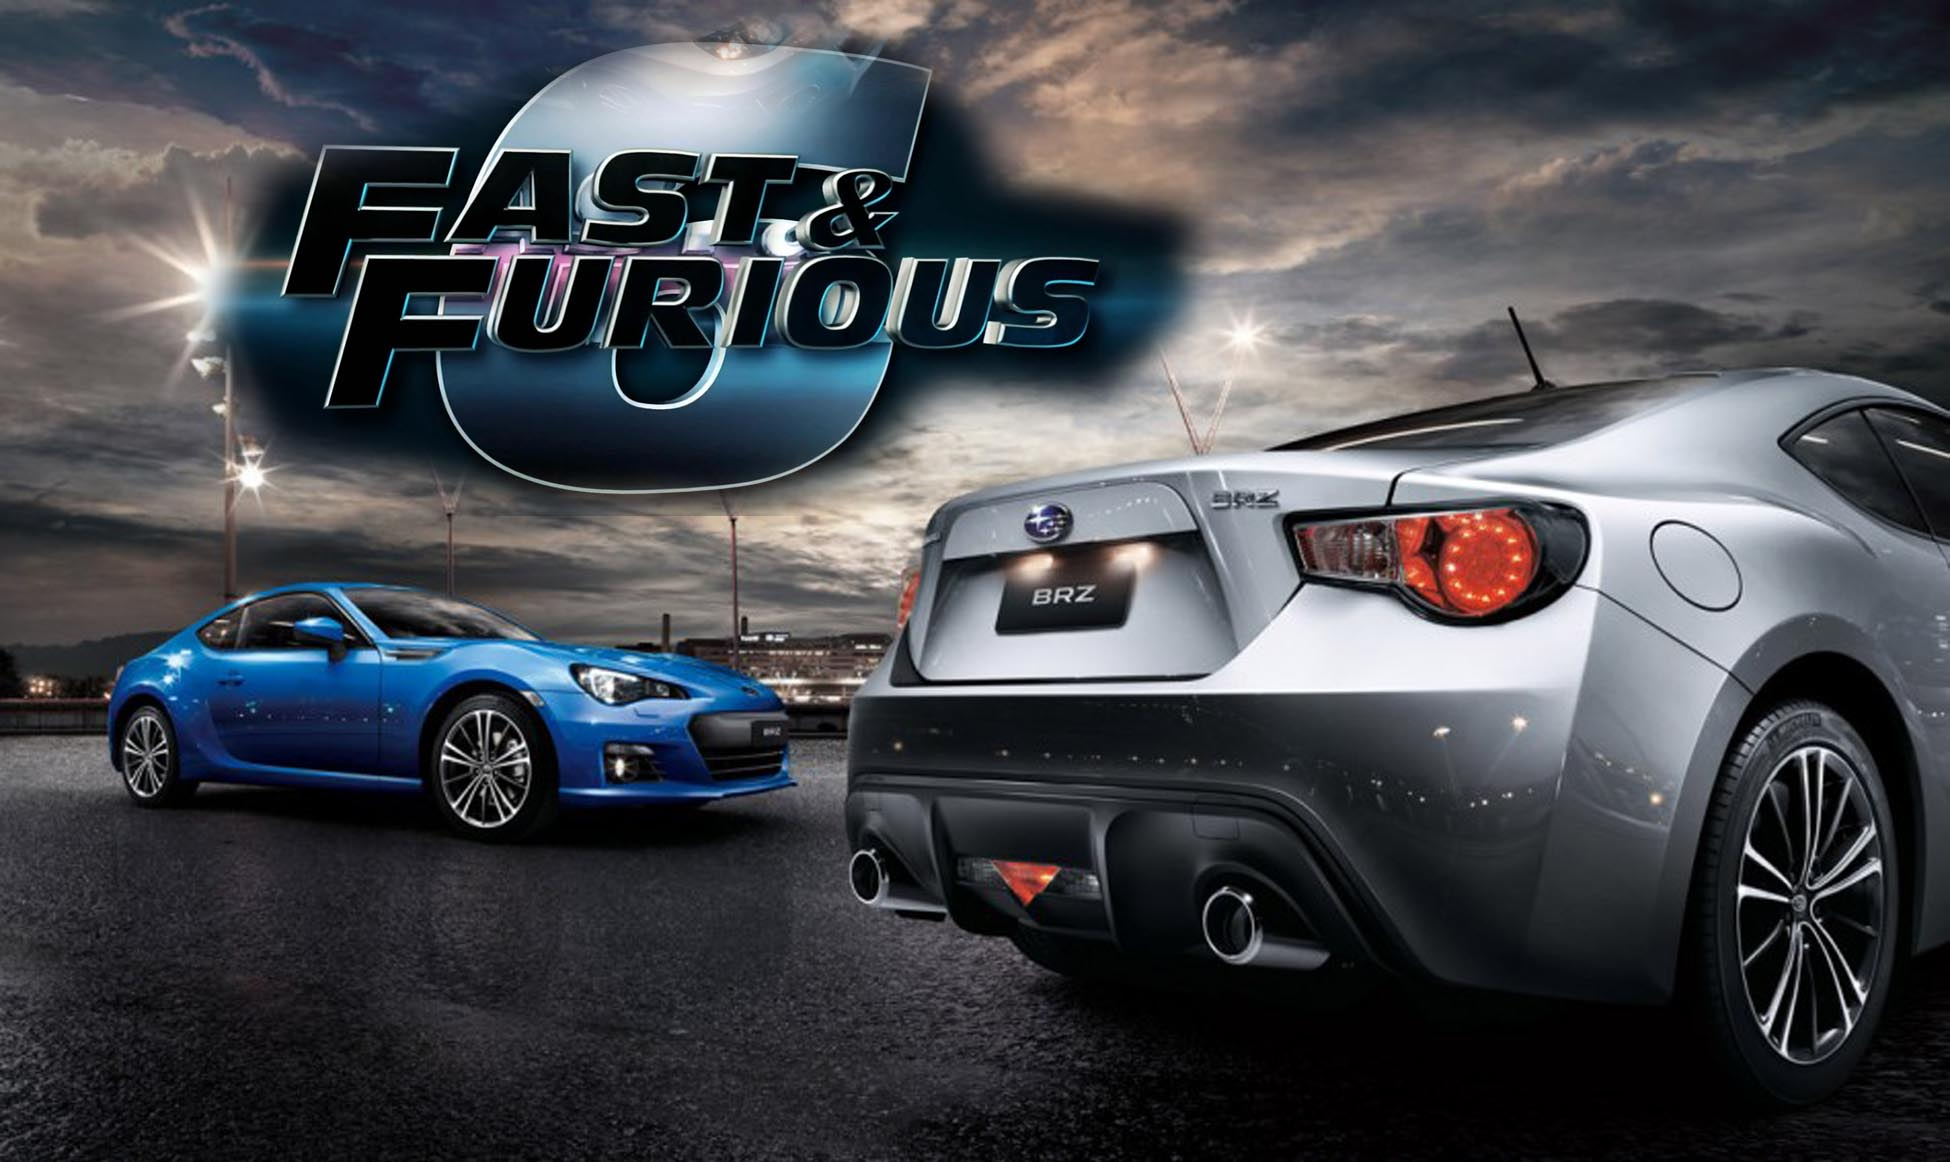 Hd Fast And Furious (#506090) - HD Wallpaper & Backgrounds Download